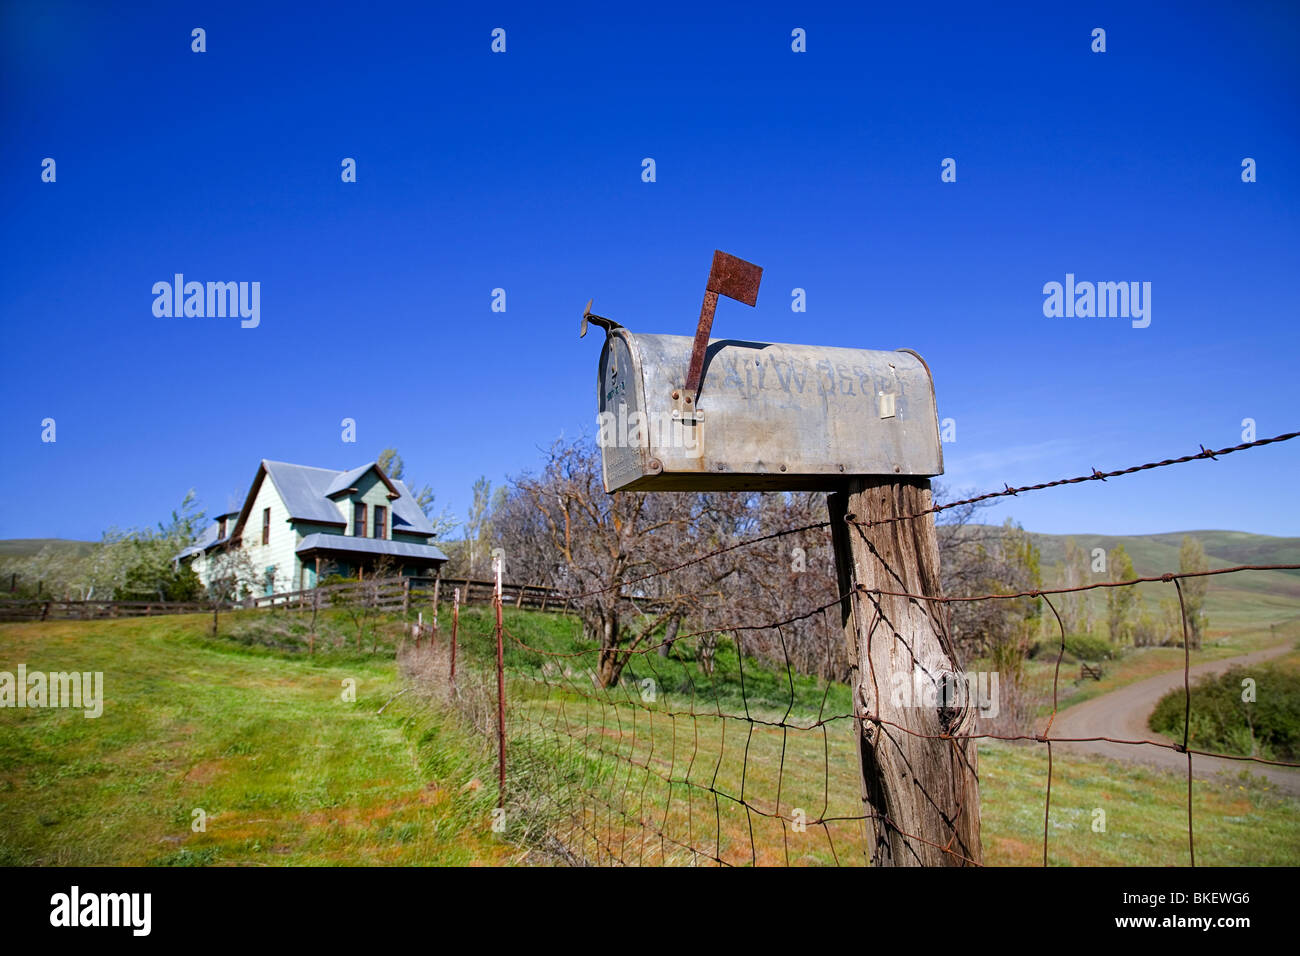 A rural postal mailbox at a remote cattle ranch - Stock Image